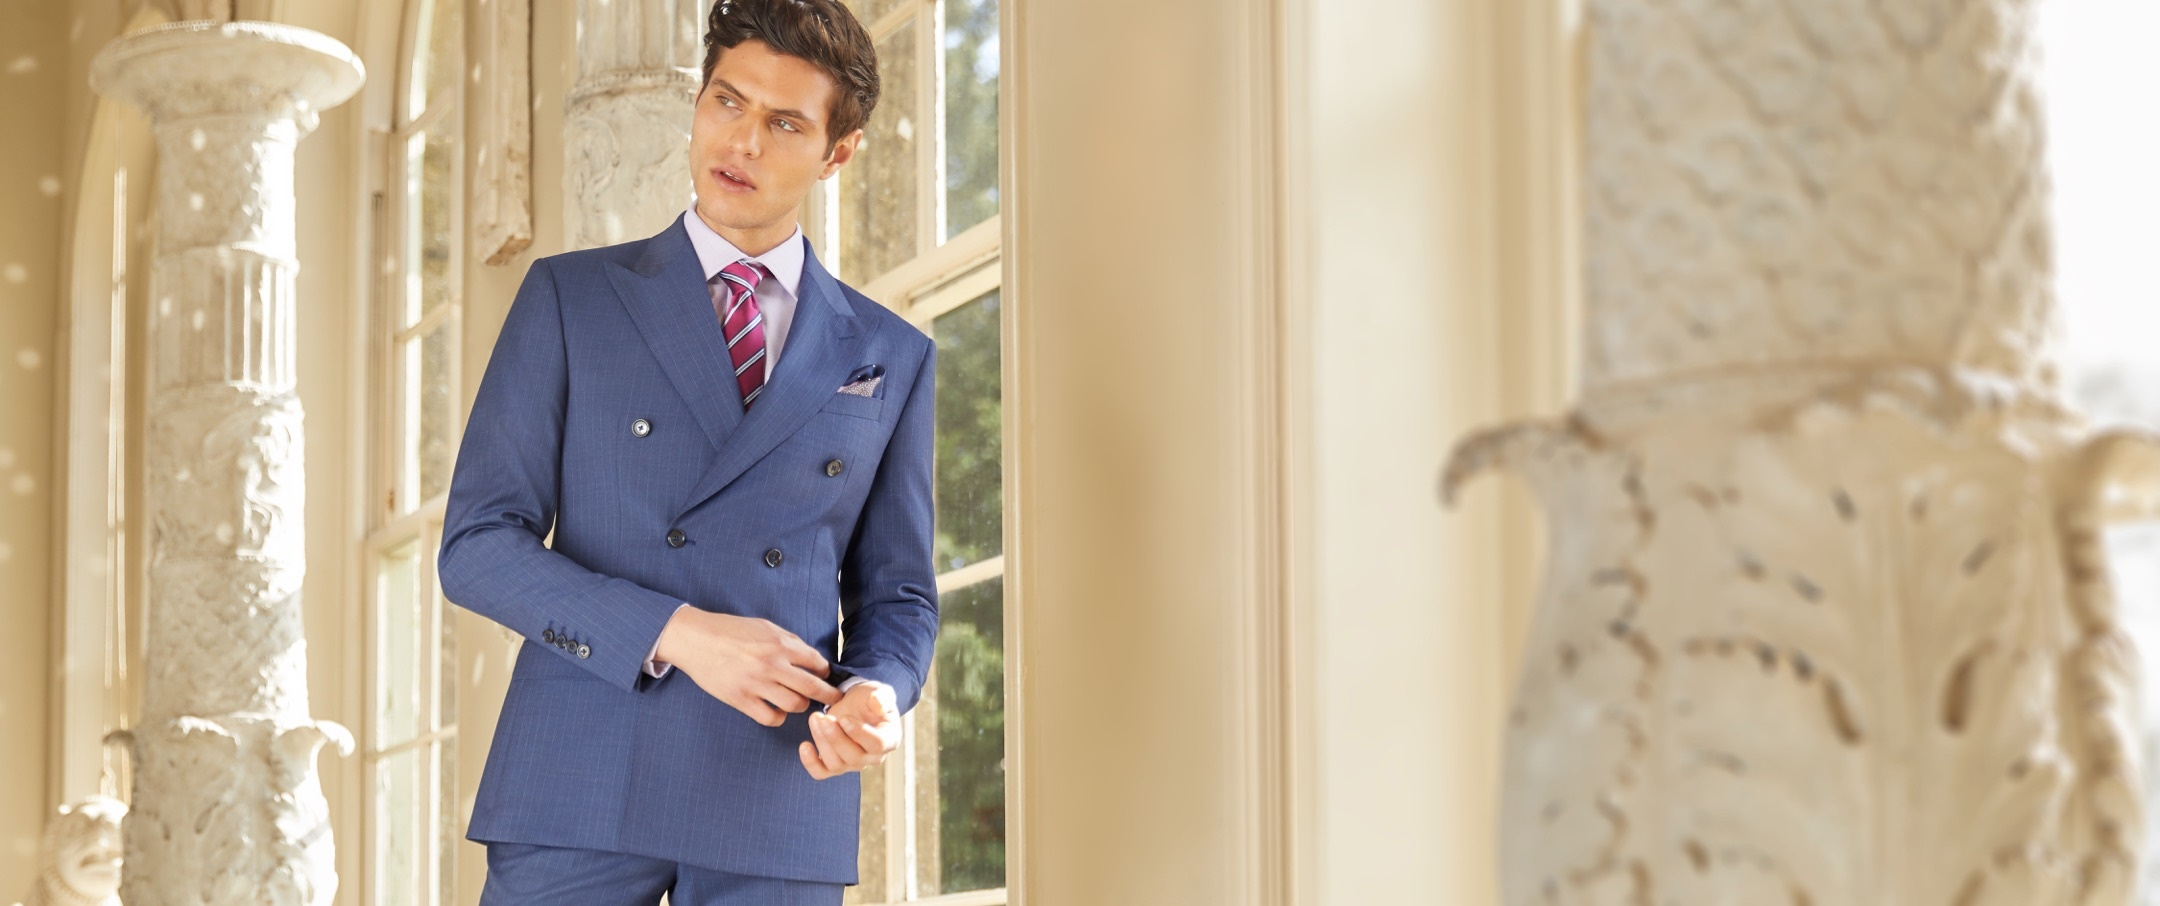 Suits for Men - 2020 Summer Collection - Hawes & Curtis